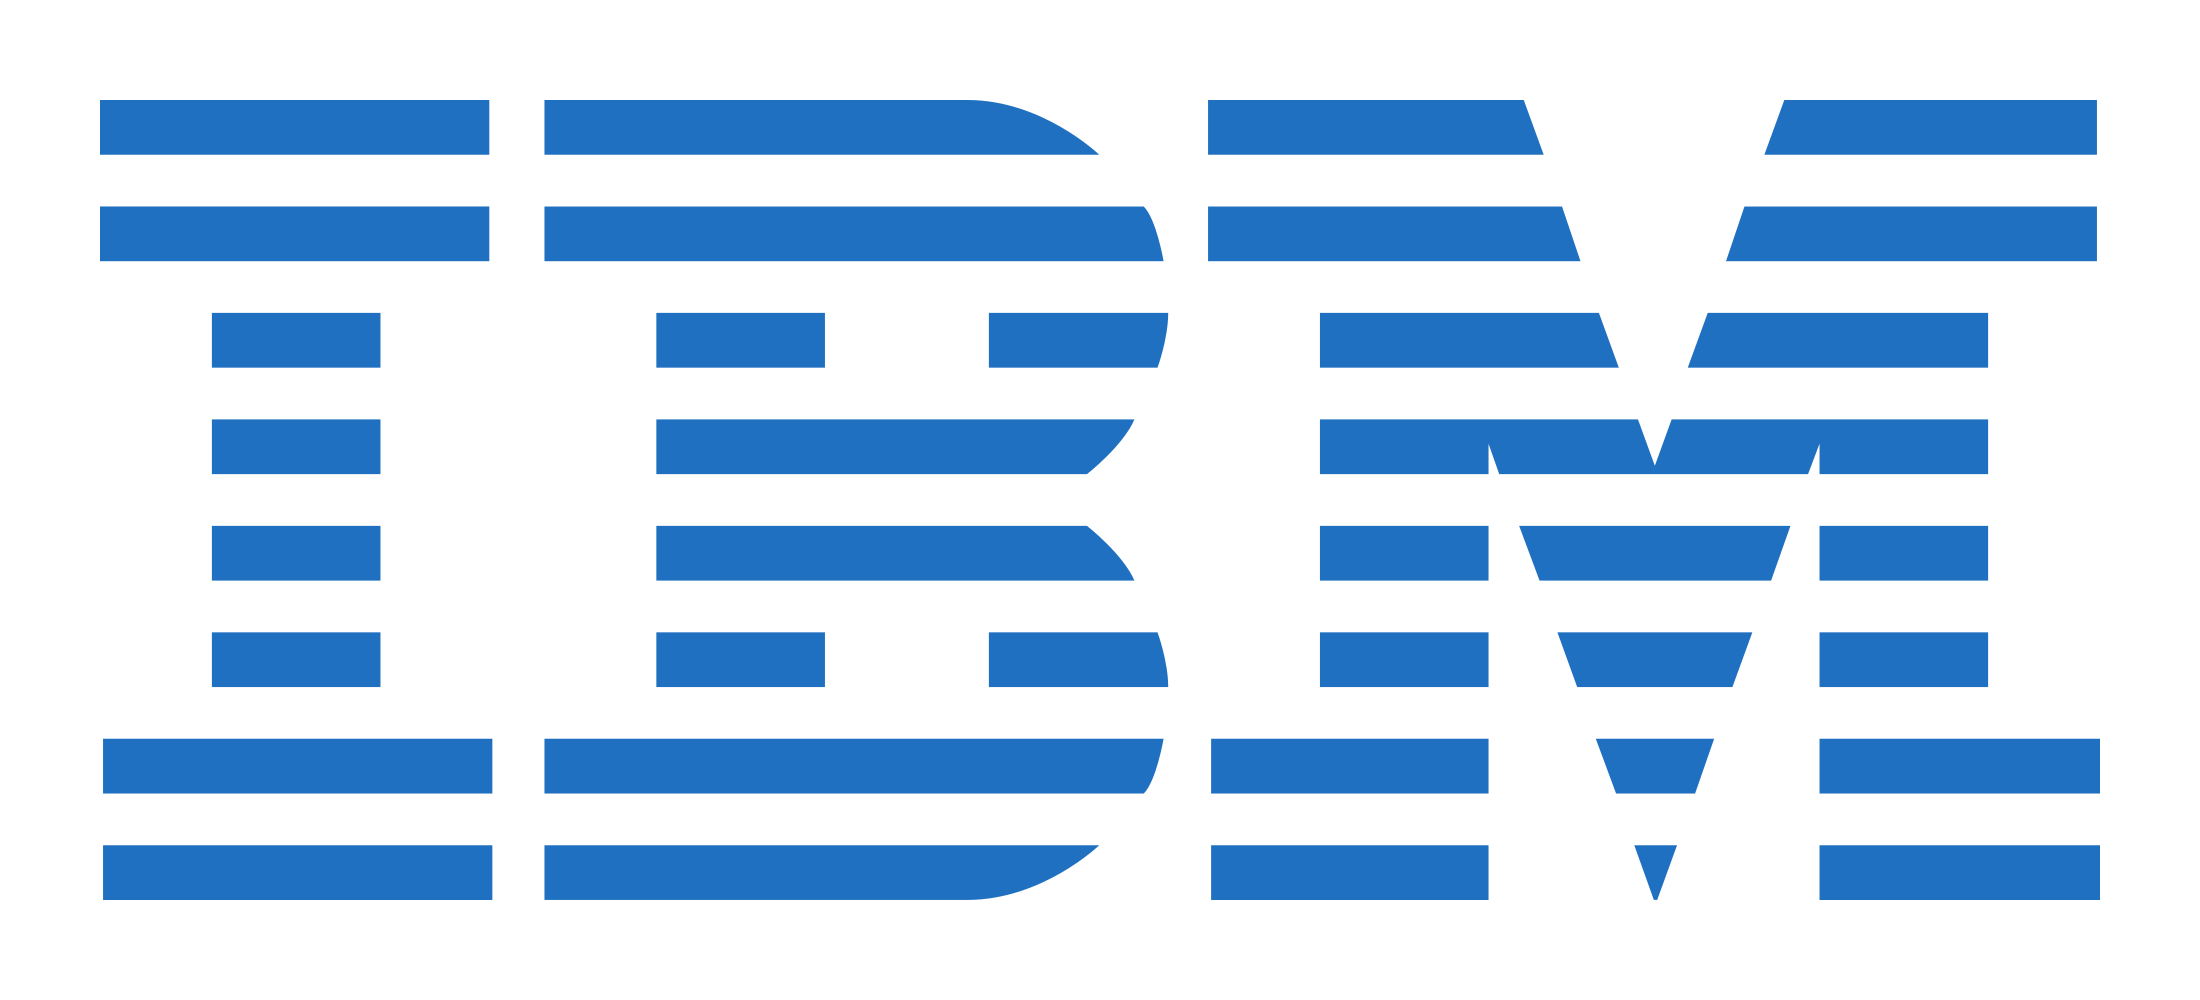 IBM Logo - IBM Logo, International Business Machines symbol